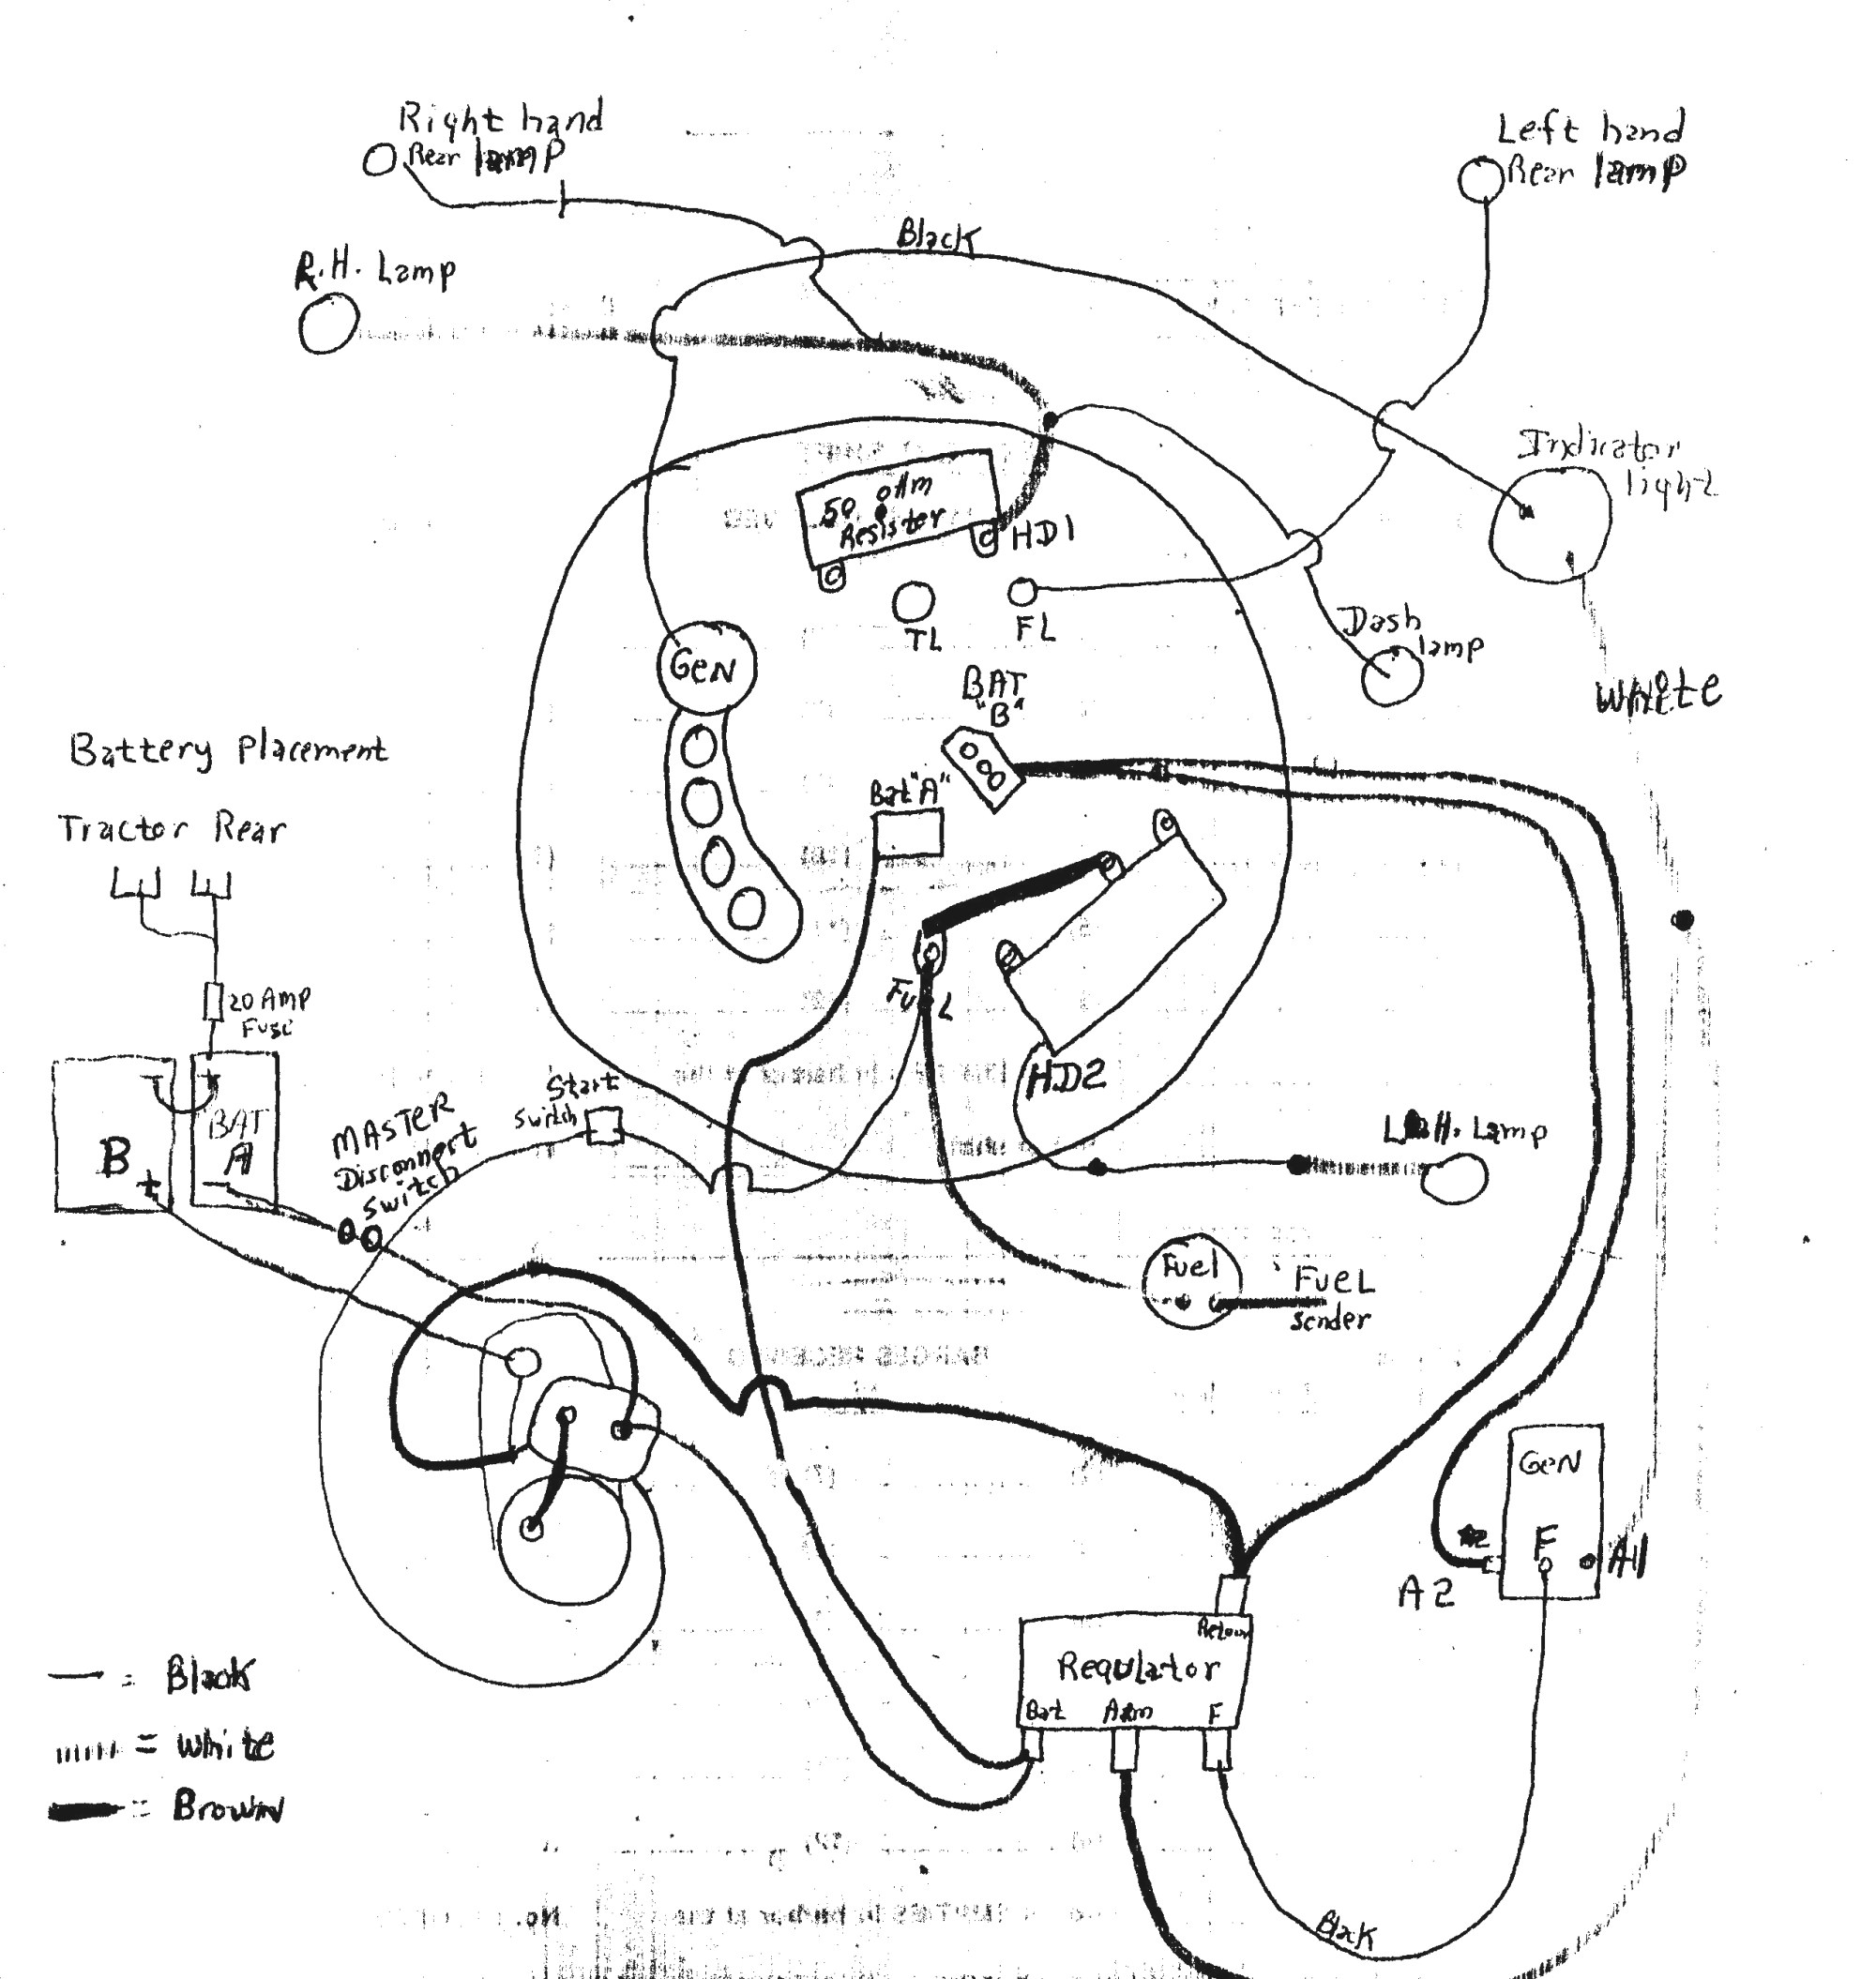 hight resolution of the john deere 24 volt electrical system explained john deere 2150 wiring diagram john deere 830 wiring diagram